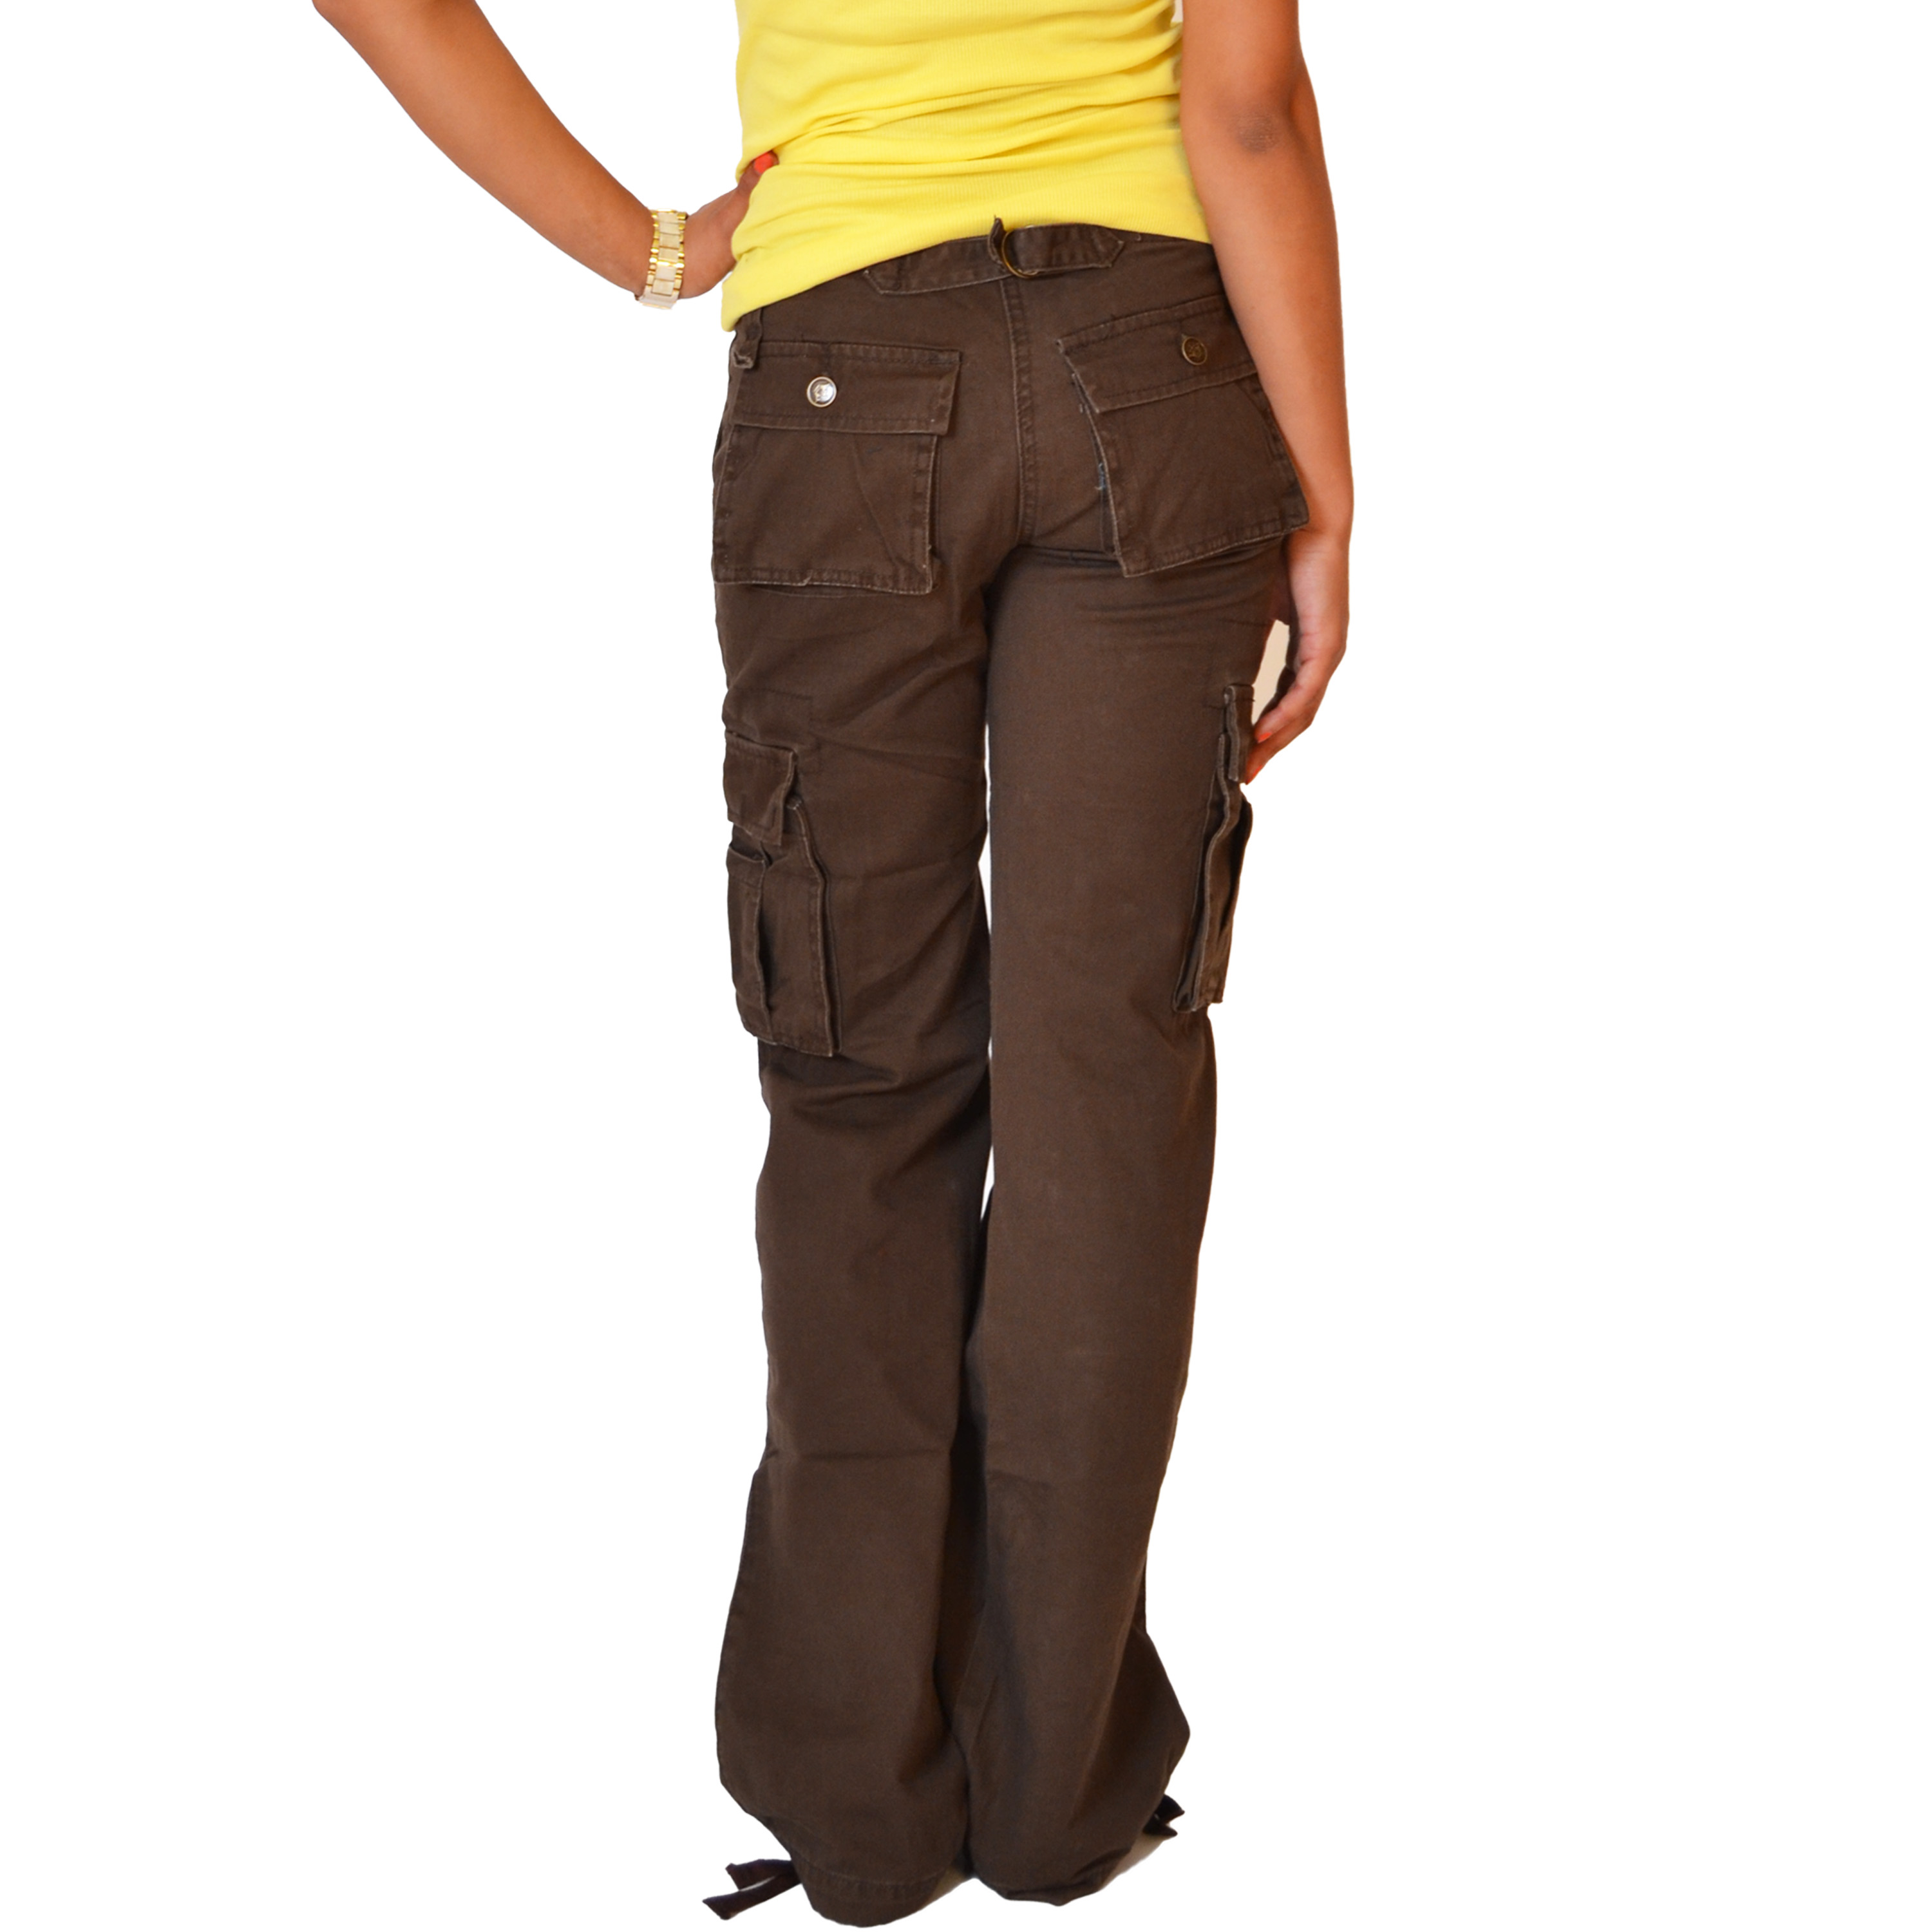 Fantastic Remarkably Large, Unobtrusive Pockets And Slightly Stretchy Fabric Set The New 511 DefenderFlex Pant Apart From The Crowd These Are Cargo Pants  Dark Brown, Dark Green, And More Colors 511 Def